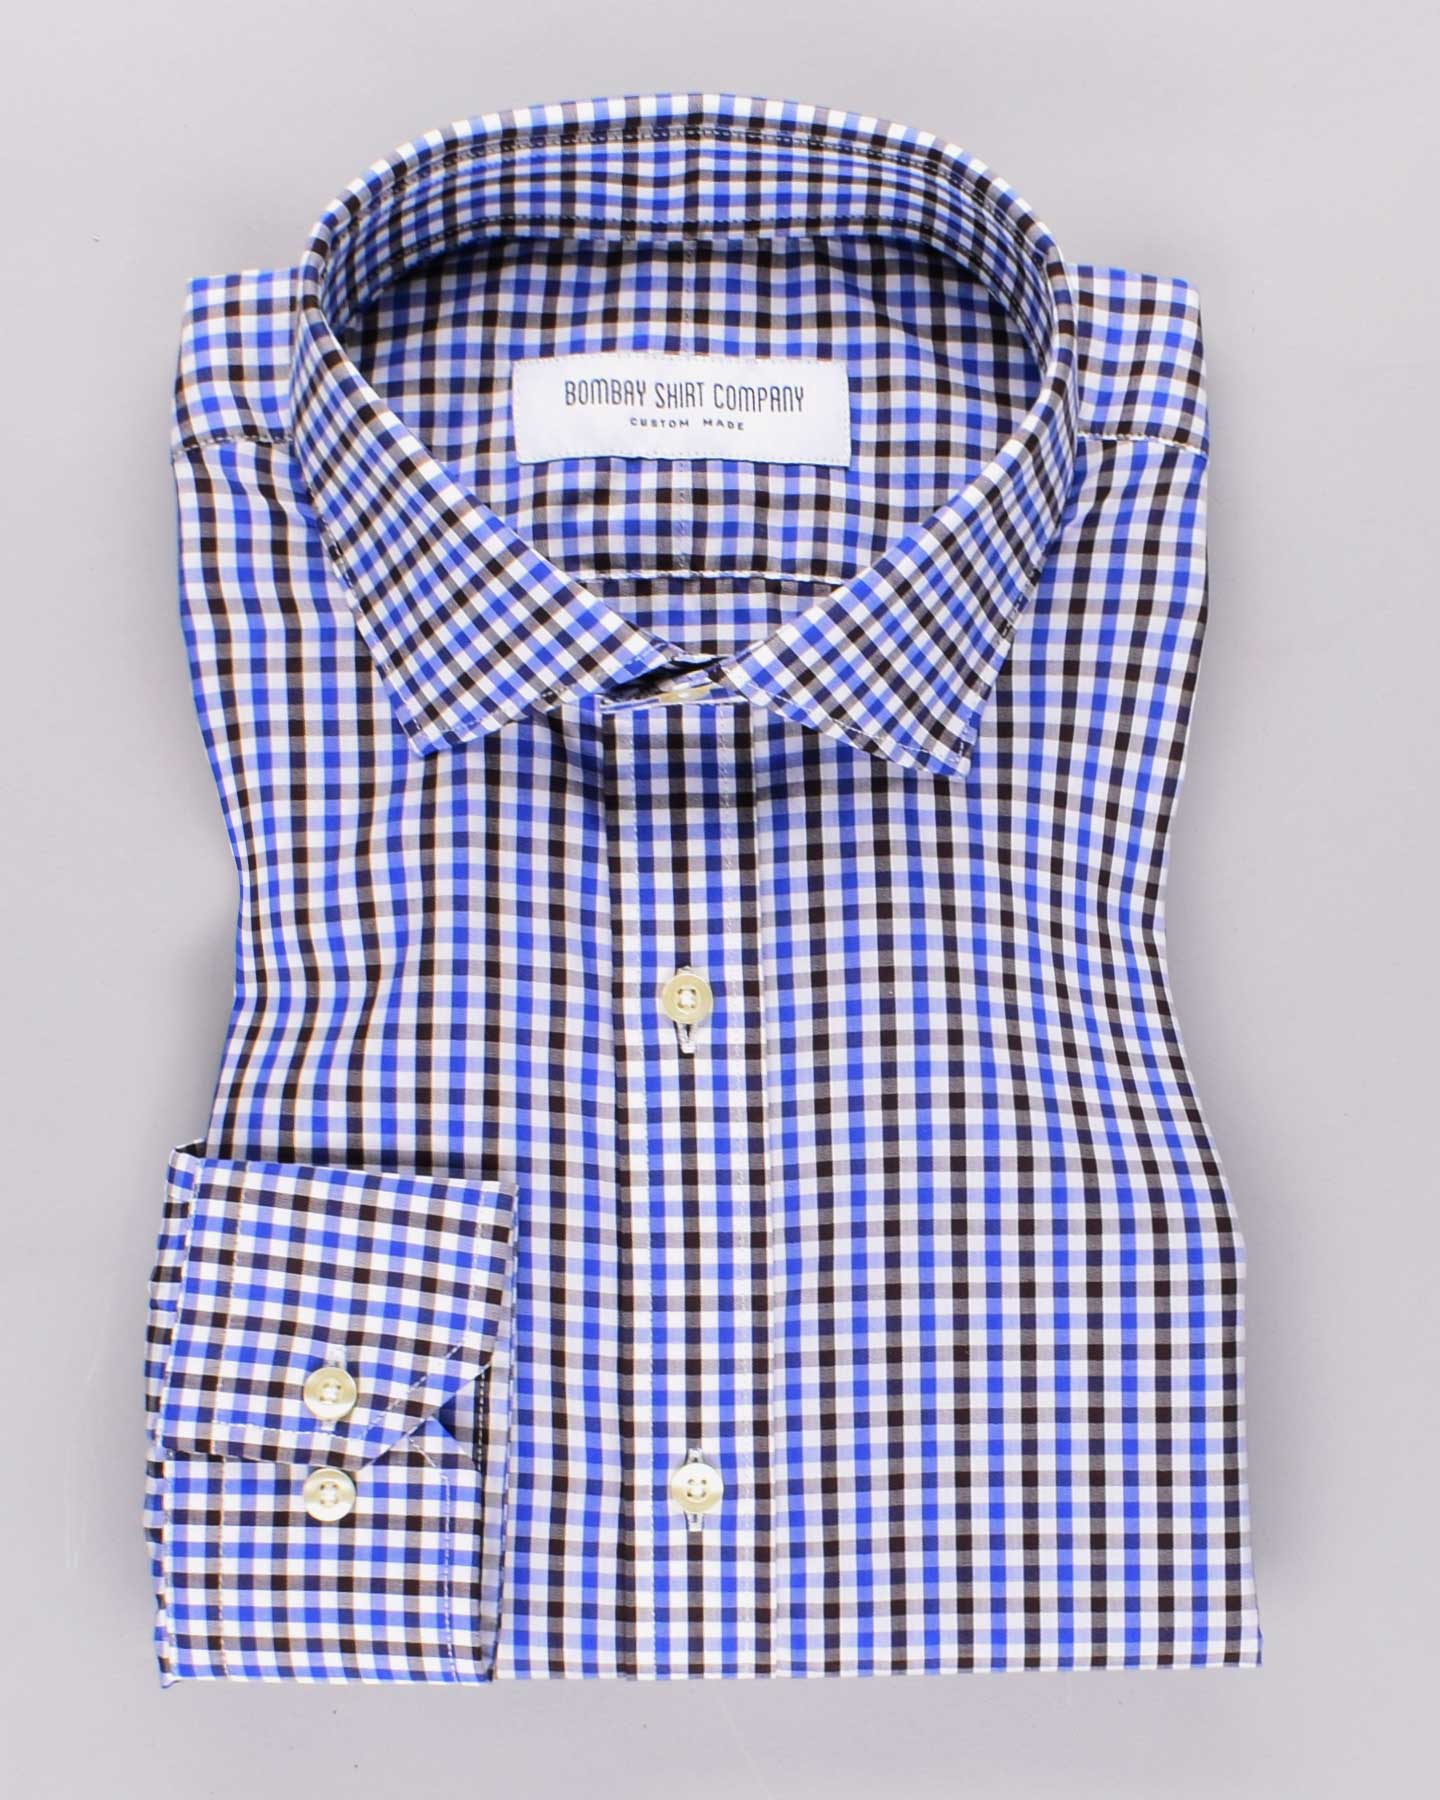 Luthai Charcoal and Indigo Checks Shirt